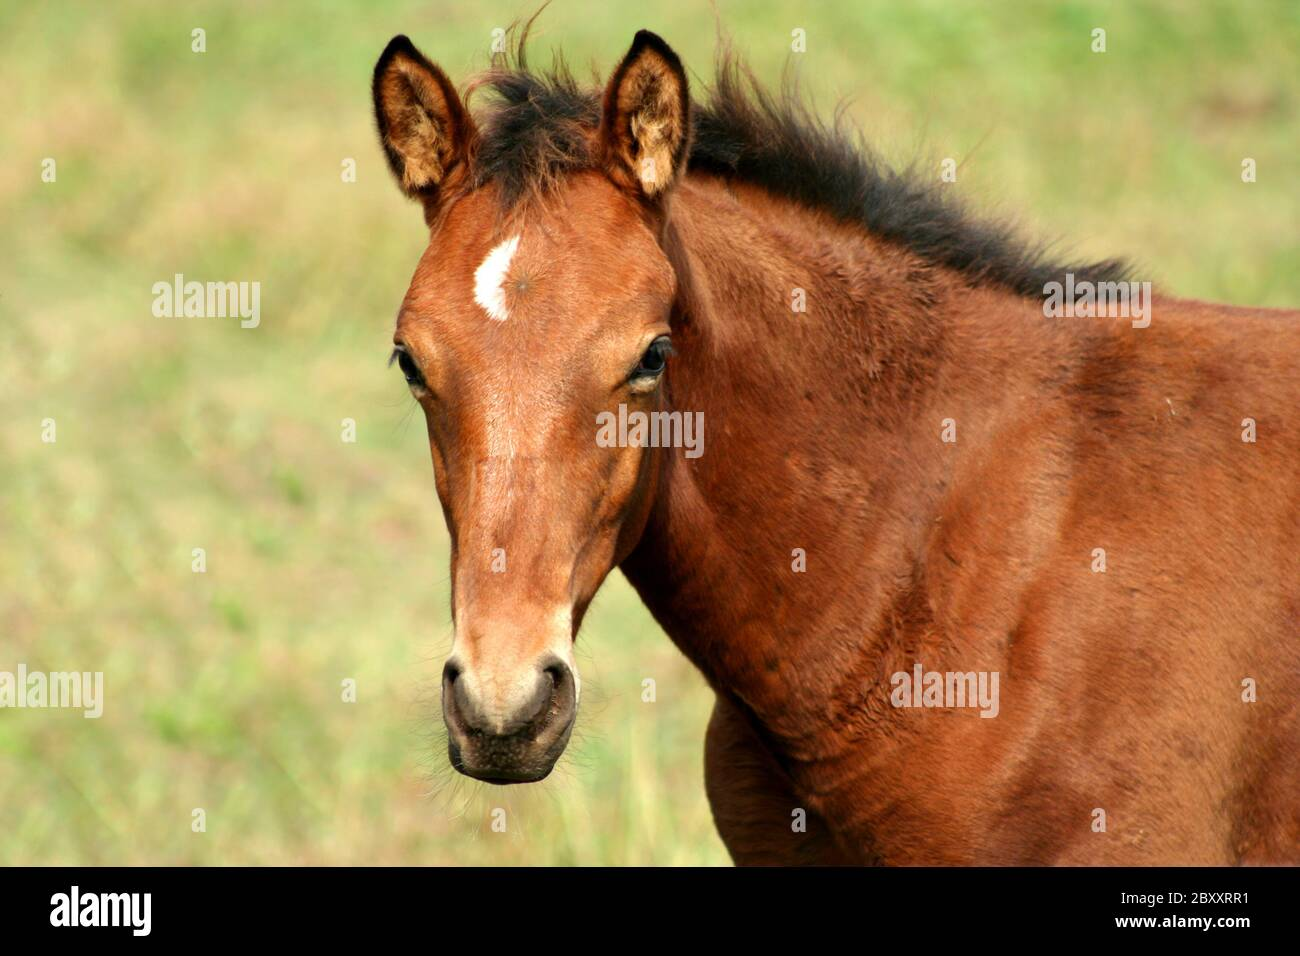 A Brown Baby Horse In A Field Stock Photo Alamy